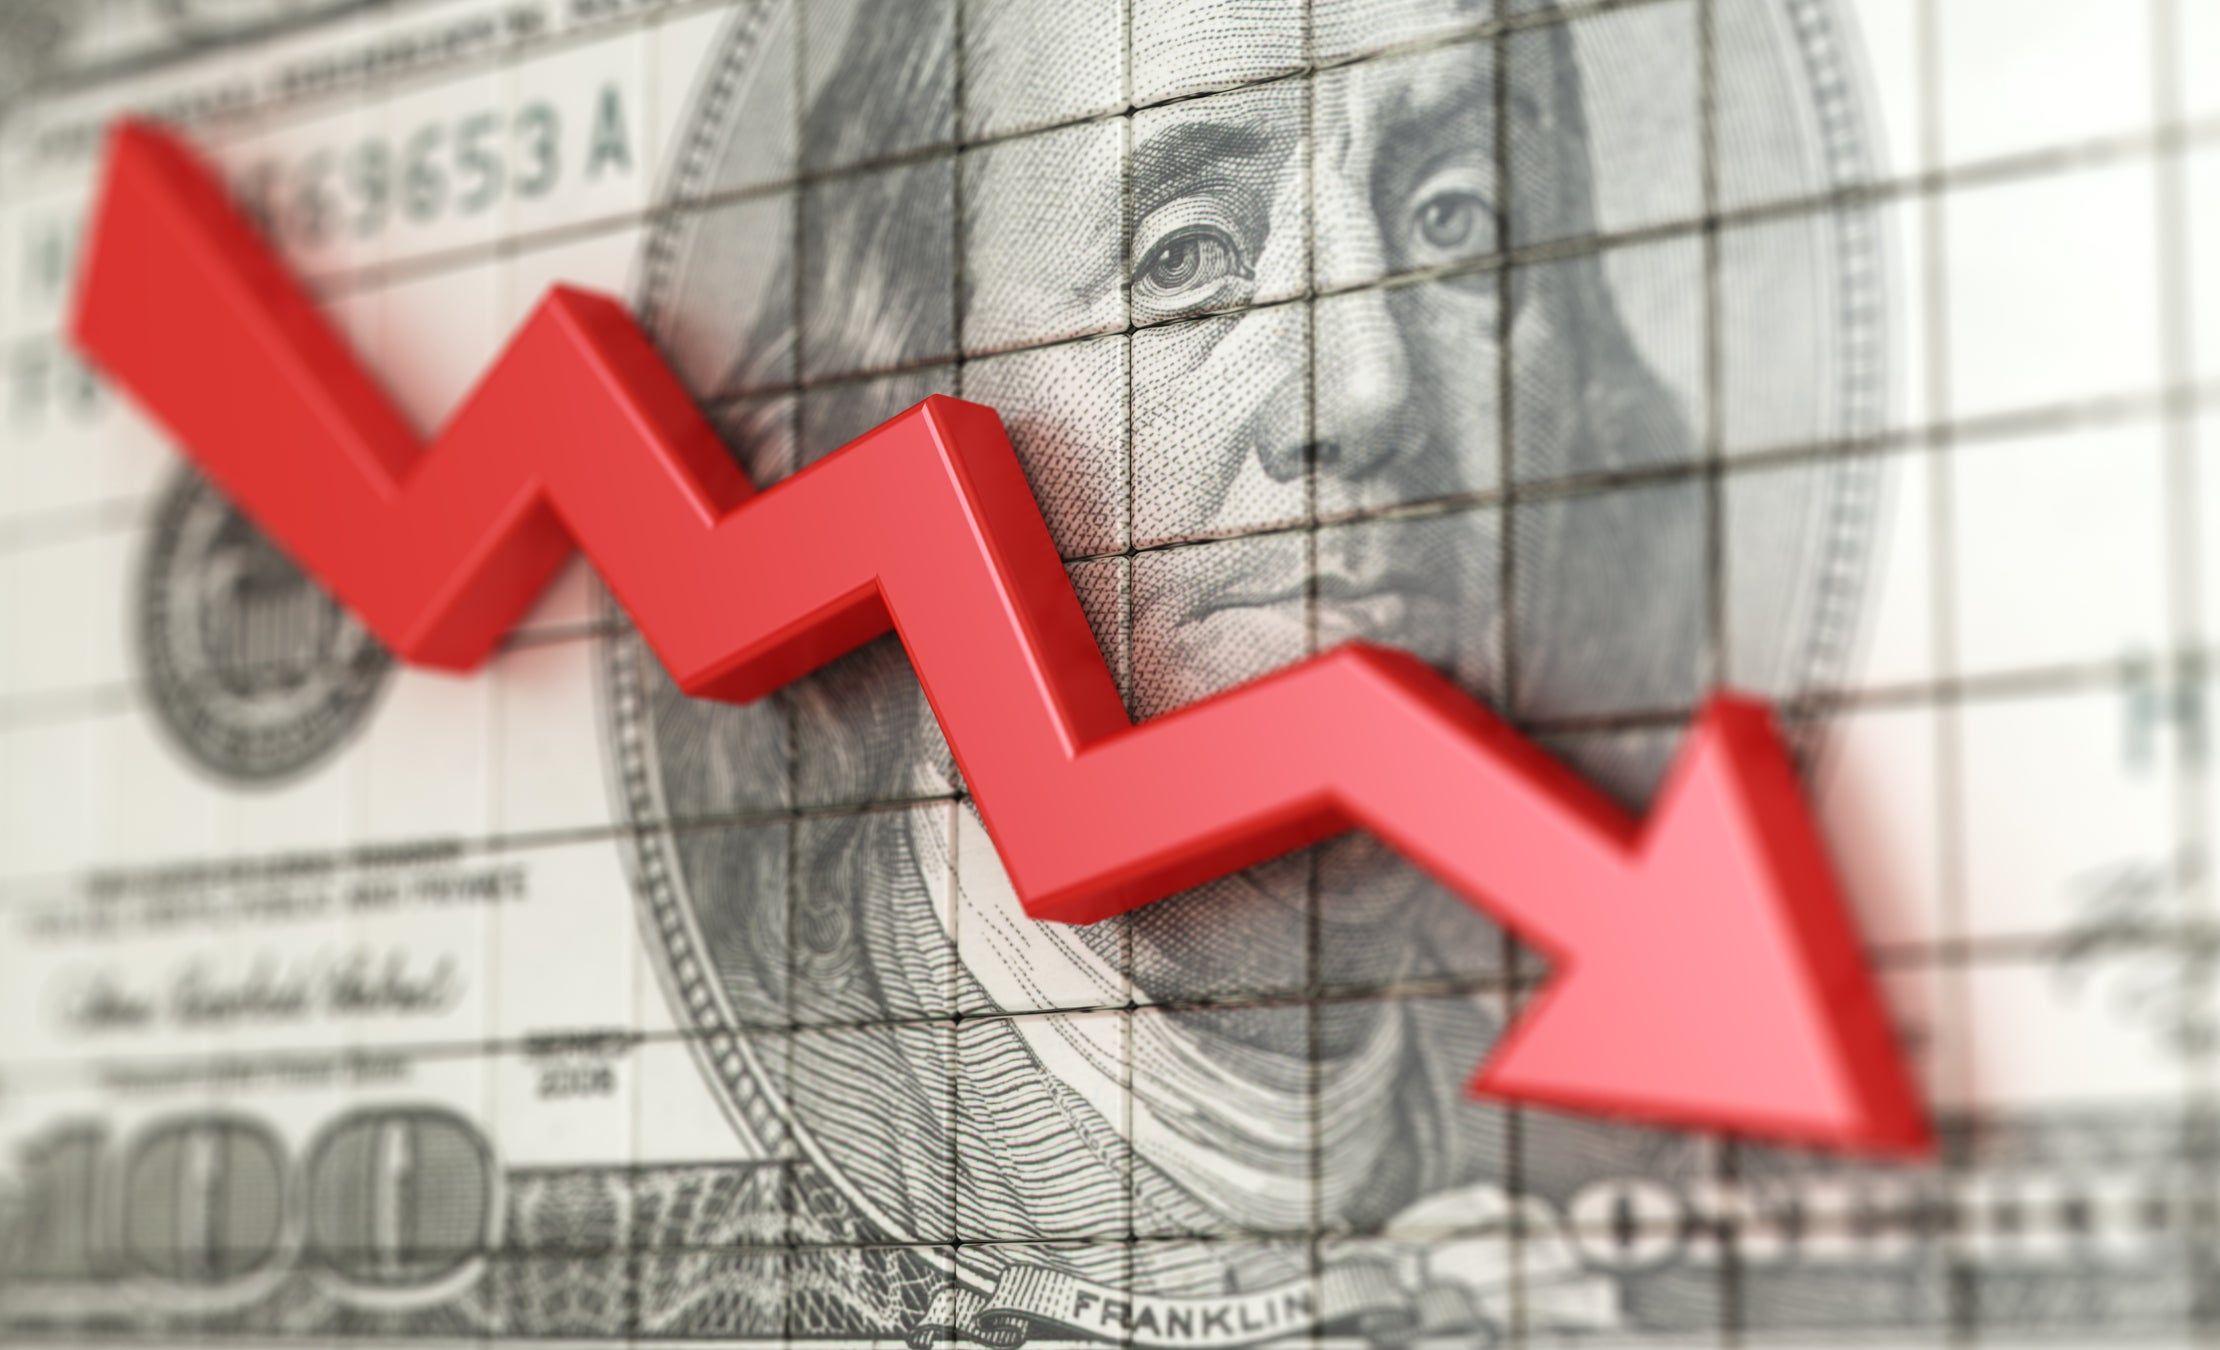 3 Growth Stocks You'll Want to Buy in the Next Market Crash